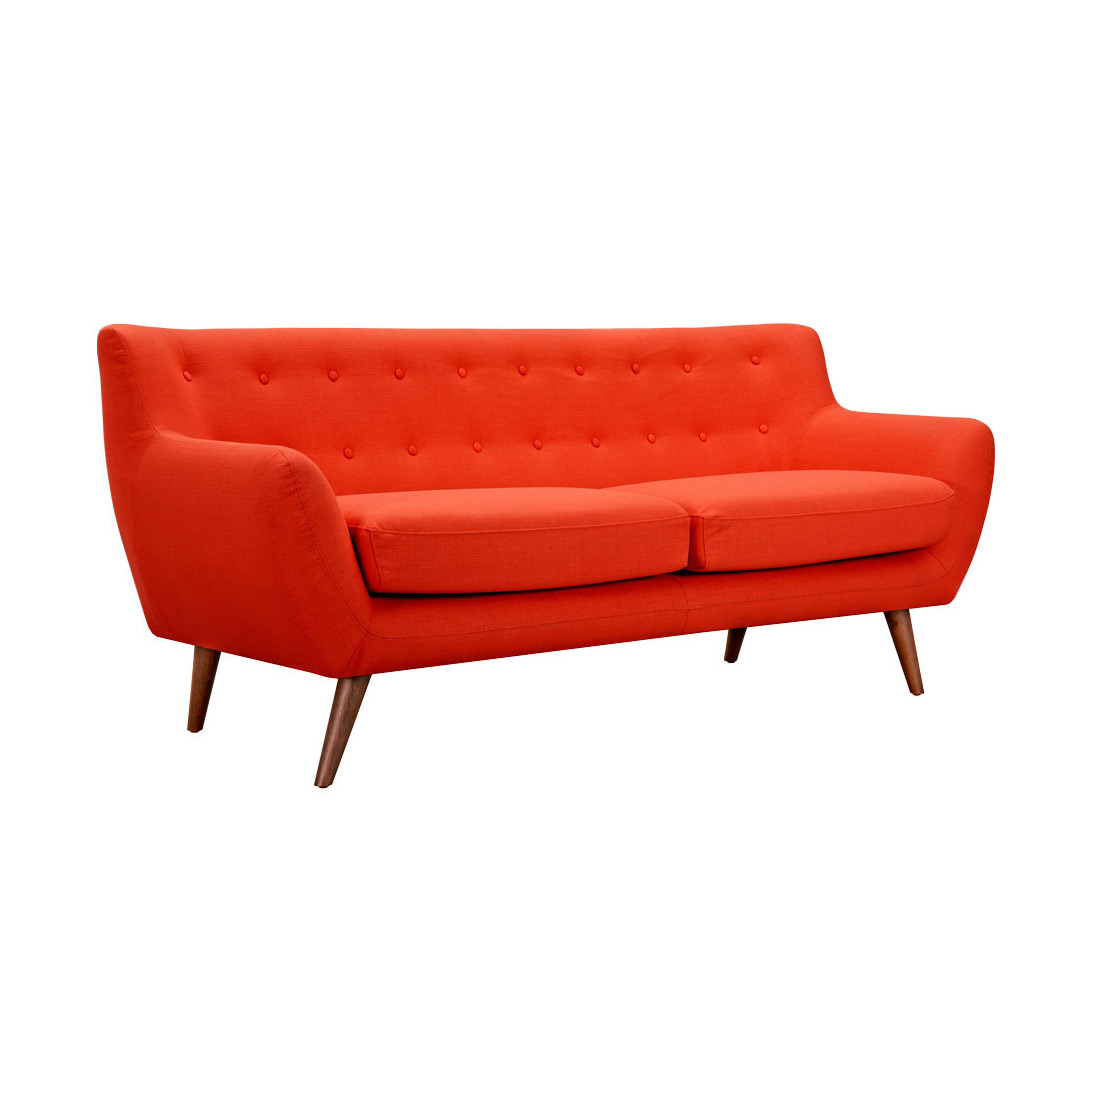 olson sofa in orange harry 39 s used furniture. Black Bedroom Furniture Sets. Home Design Ideas